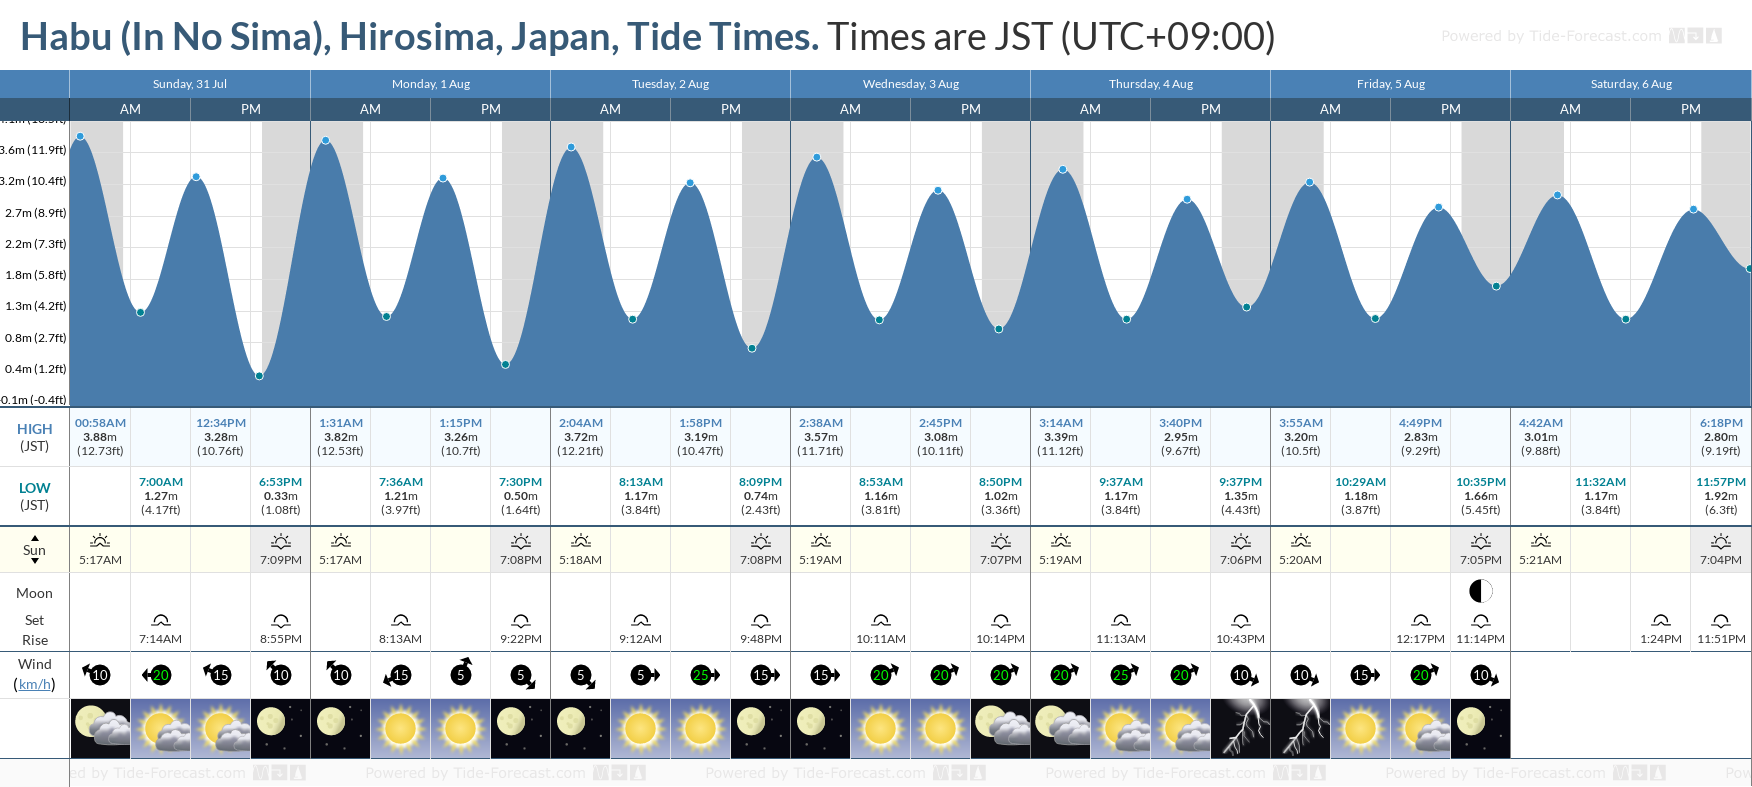 Habu (In No Sima), Hirosima, Japan Tide Chart including high and low tide tide times for the next 7 days